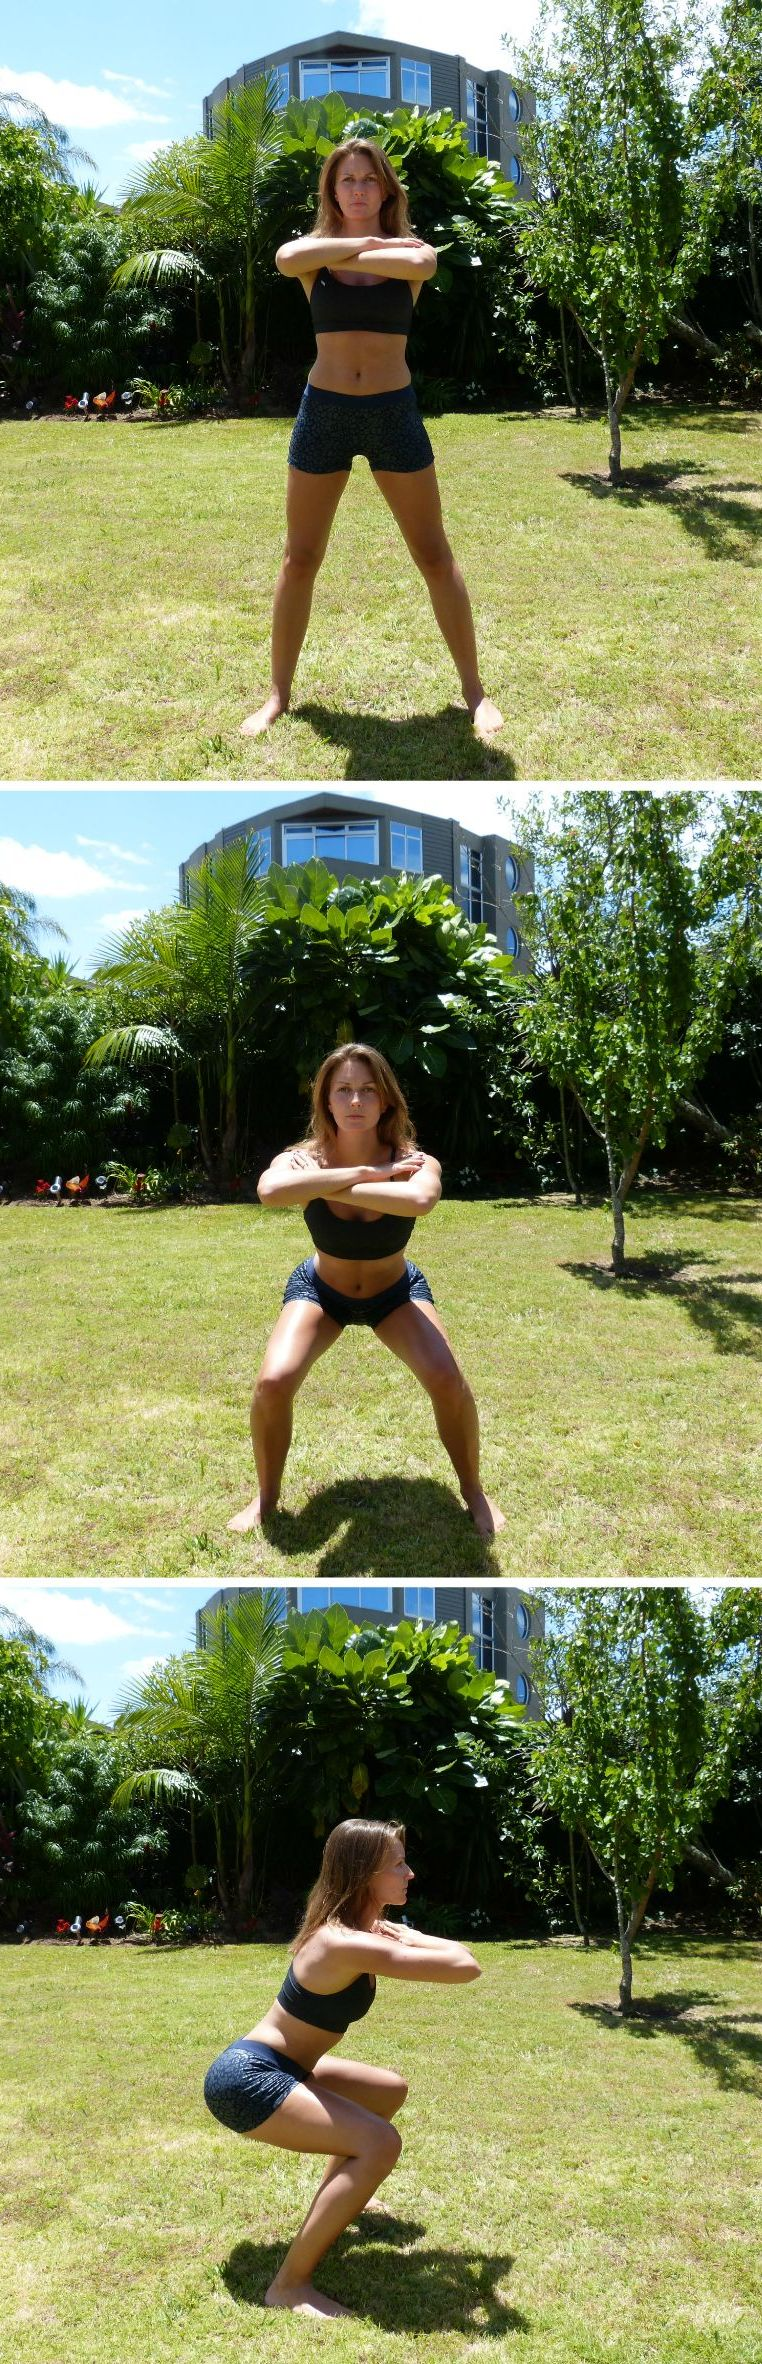 How to Get in Shape Before Your Big Day - Squats